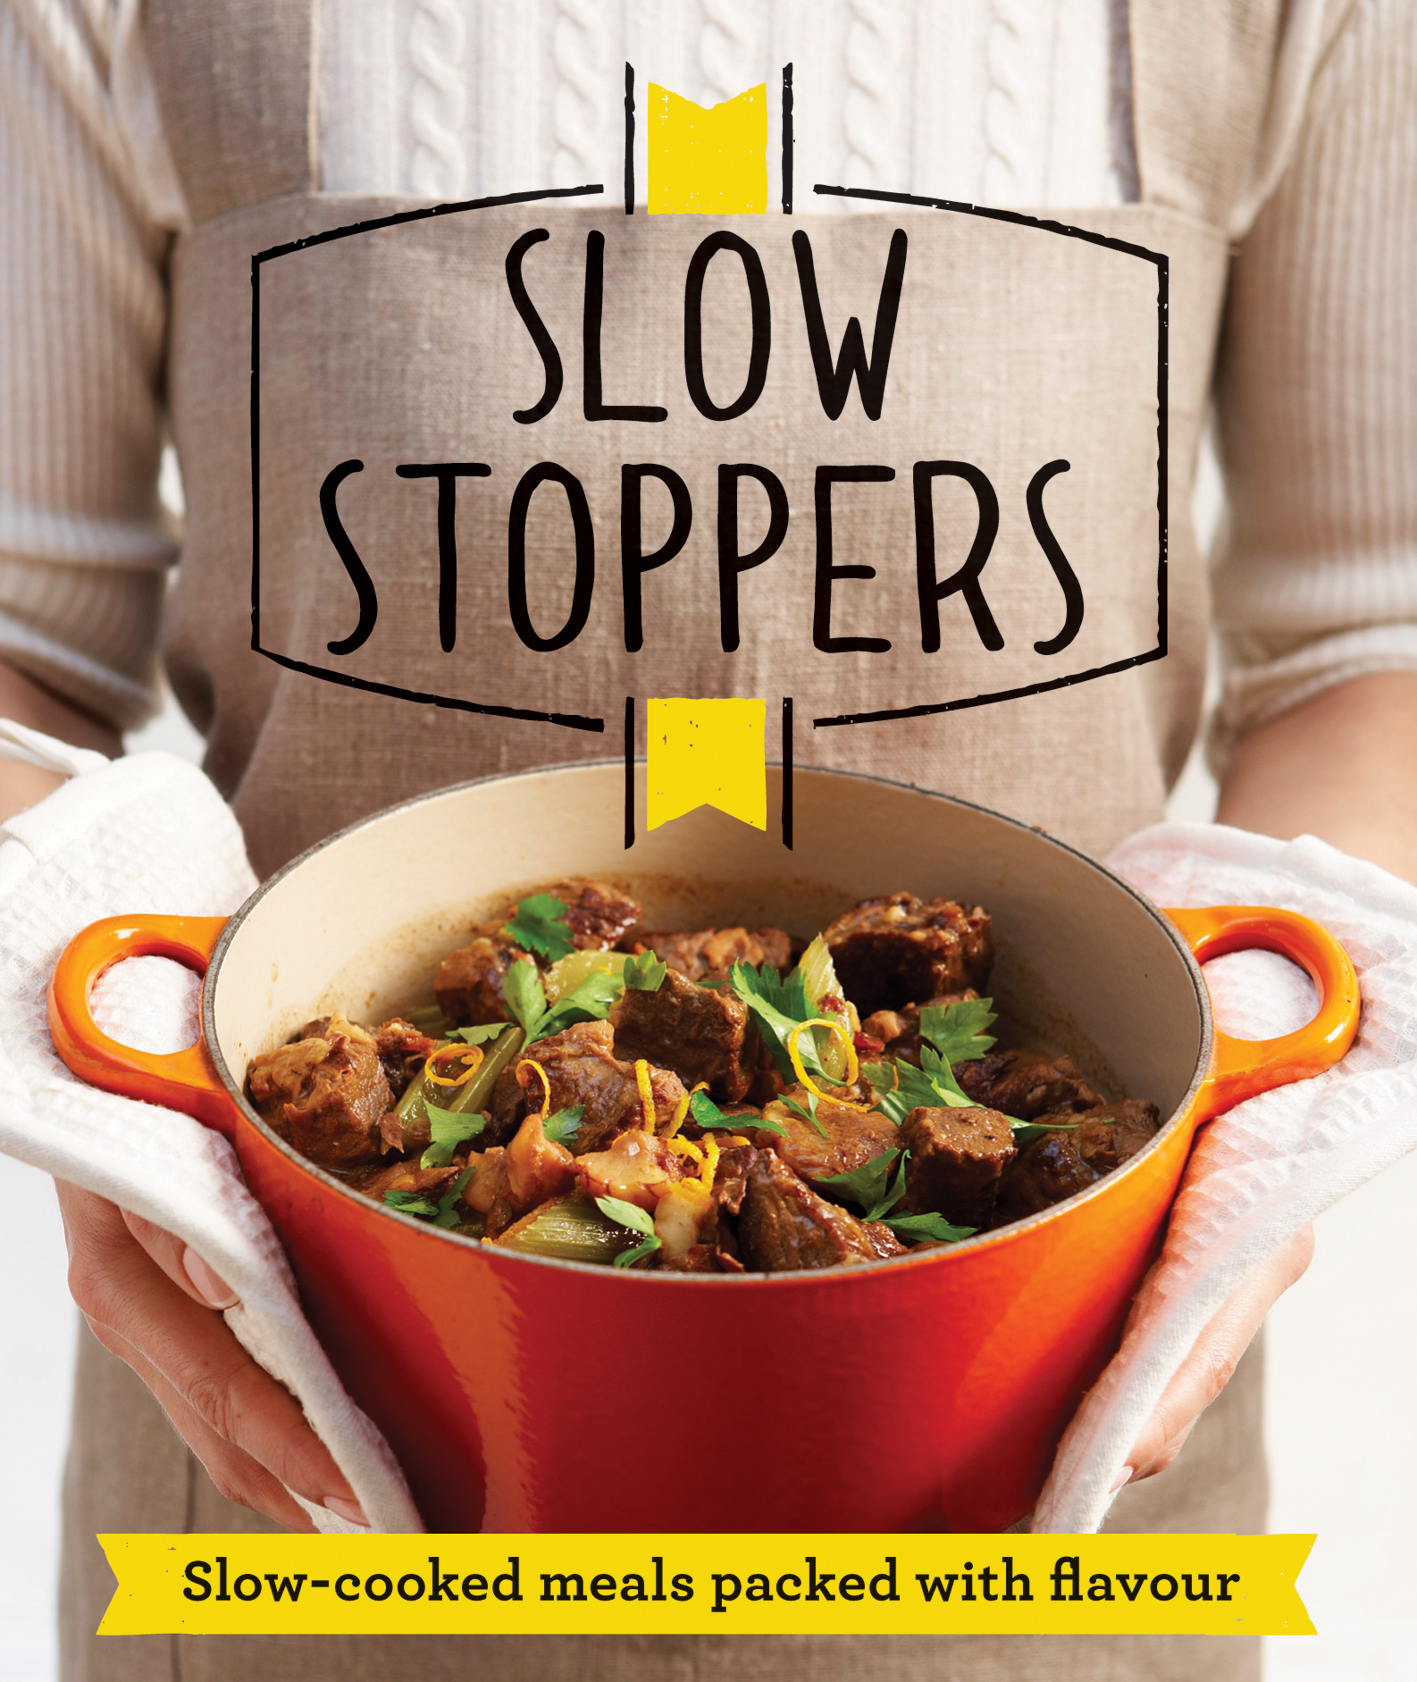 Slow Stoppers